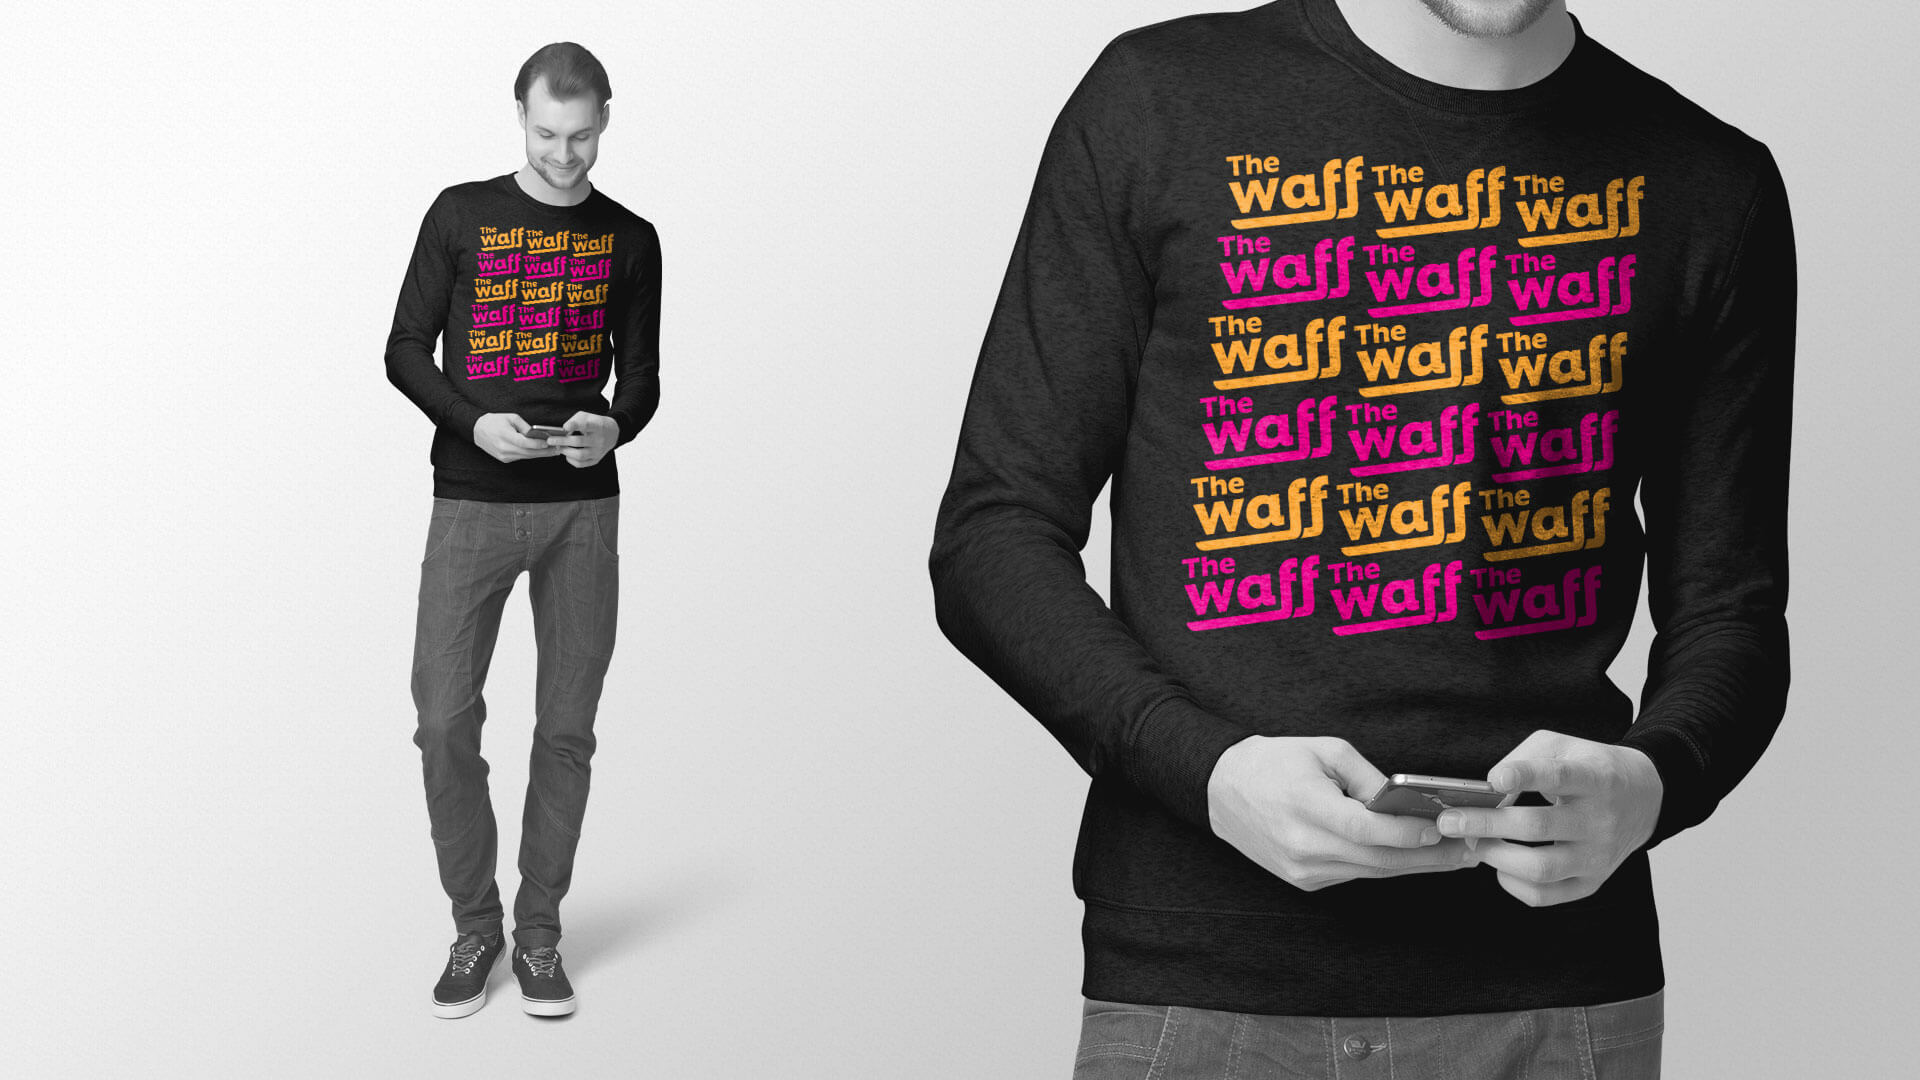 A crew neck long sleeve shirt design that relates to the proposed Winnipeg Aboriginal Film Festival campaign.